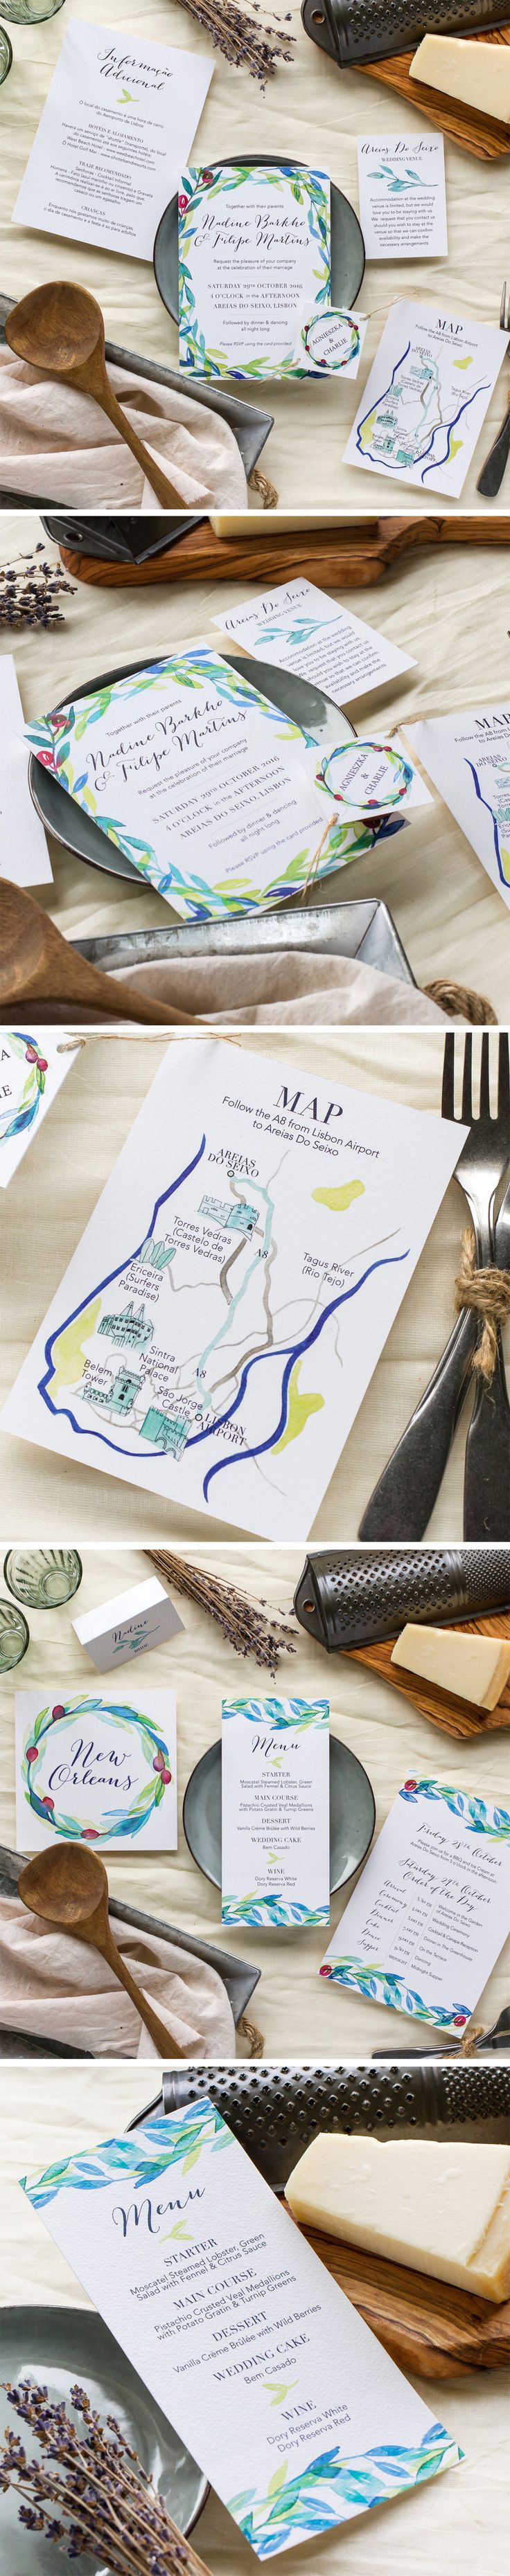 Die besten 25 Wedding invitations with maps Ideen auf Pinterest